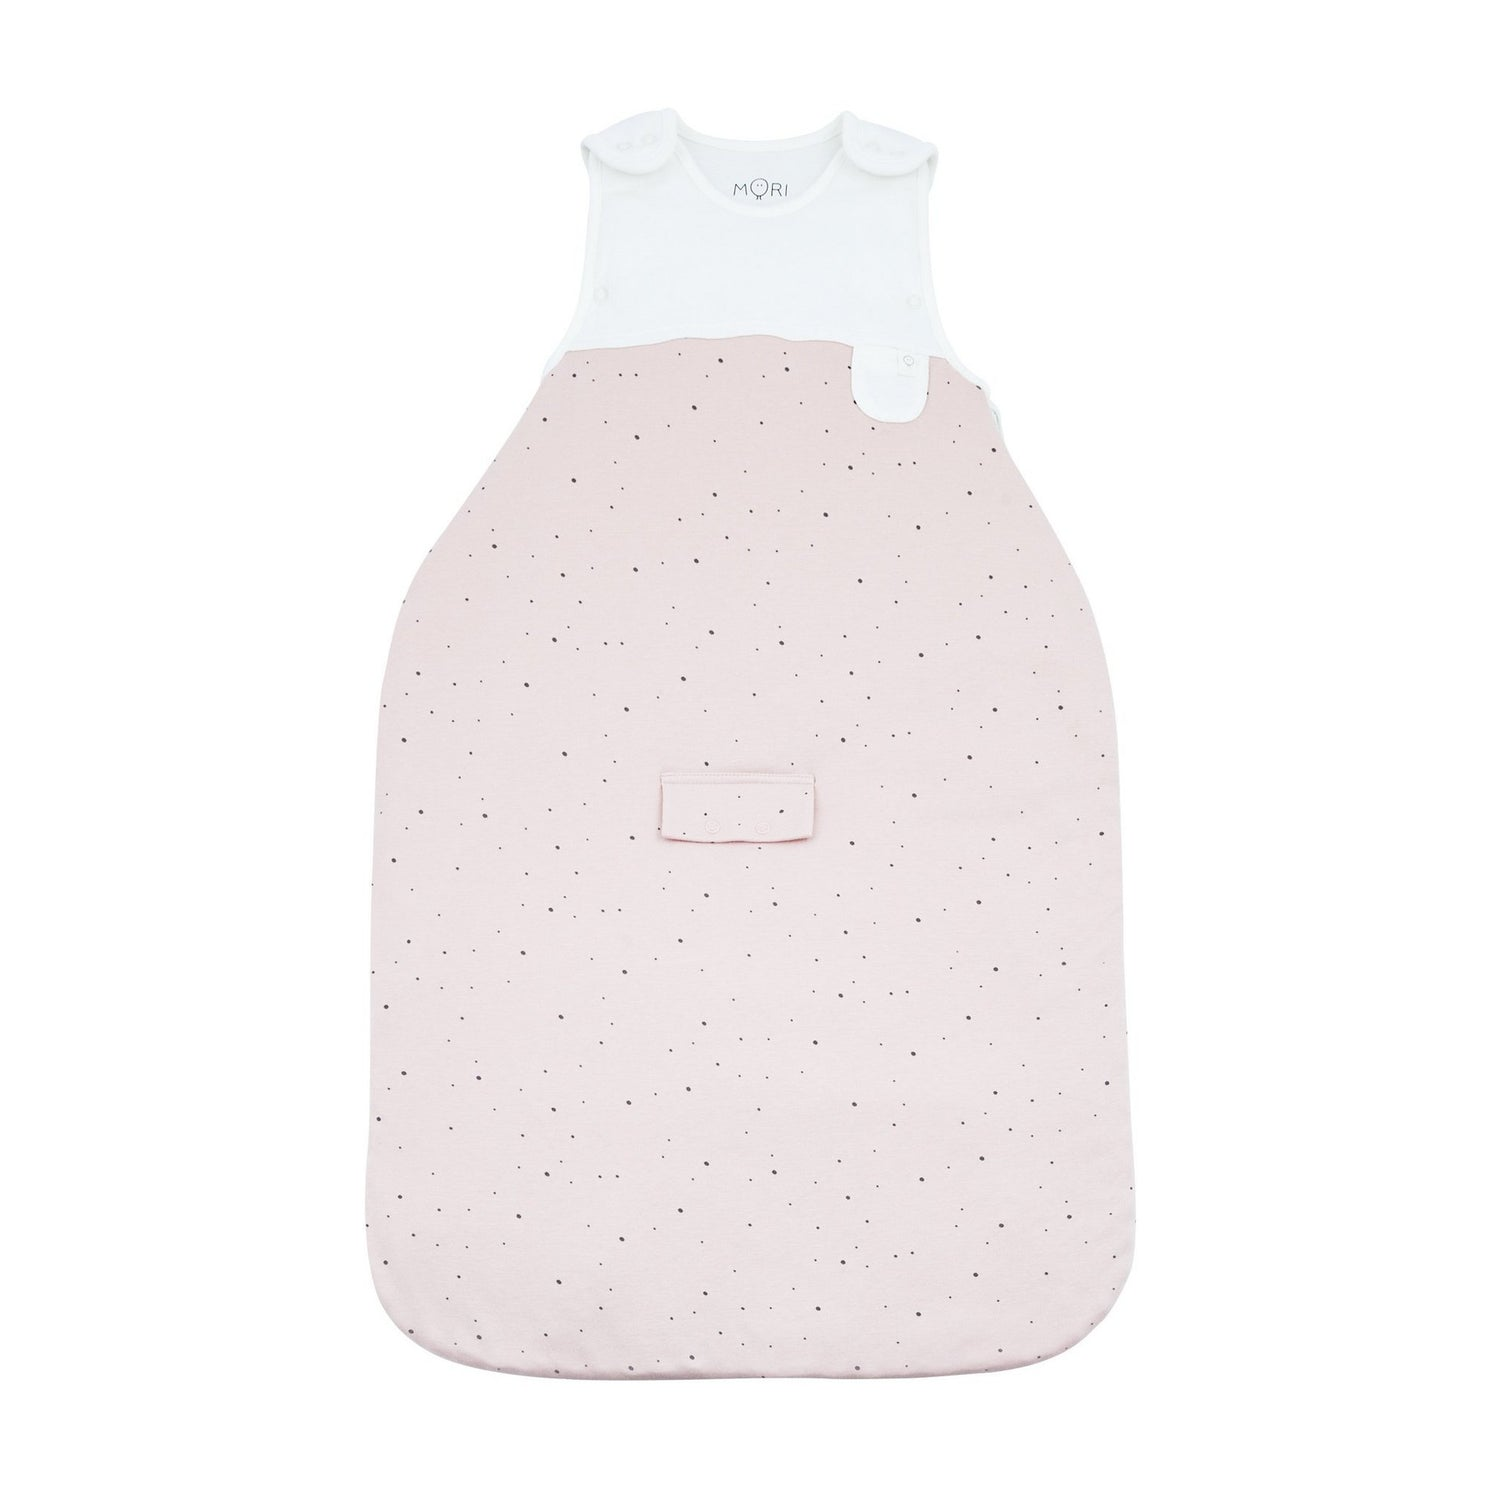 BABY MORI SLEEPING BAG 2.5